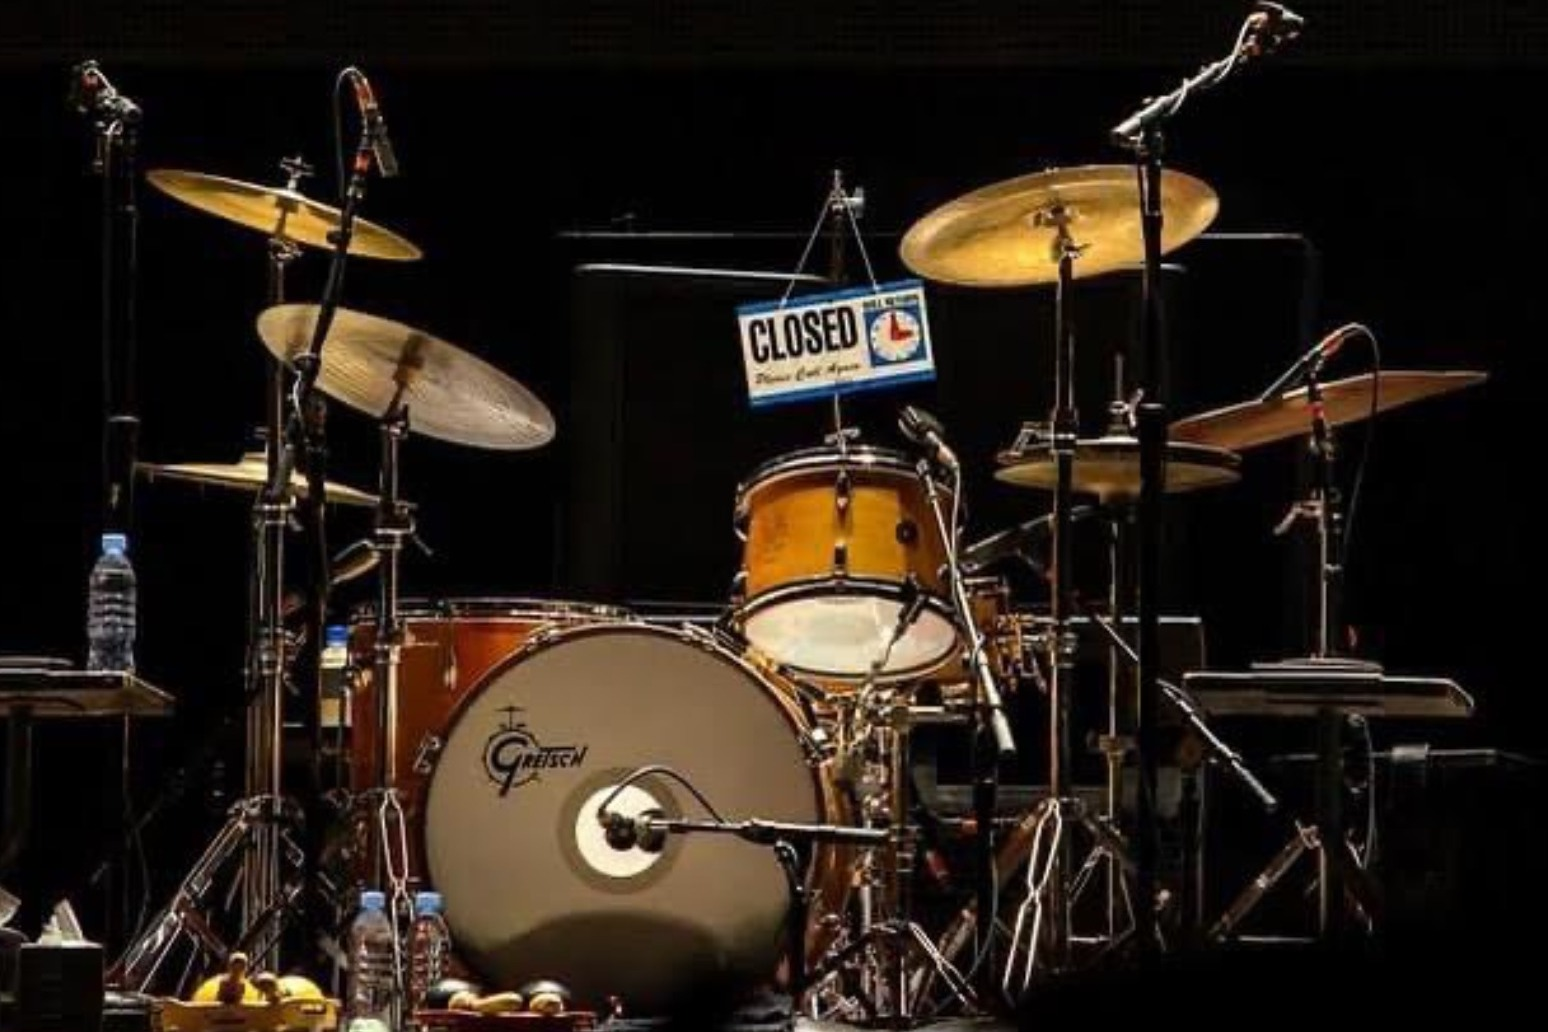 Band members pay tribute to Charlie Watts